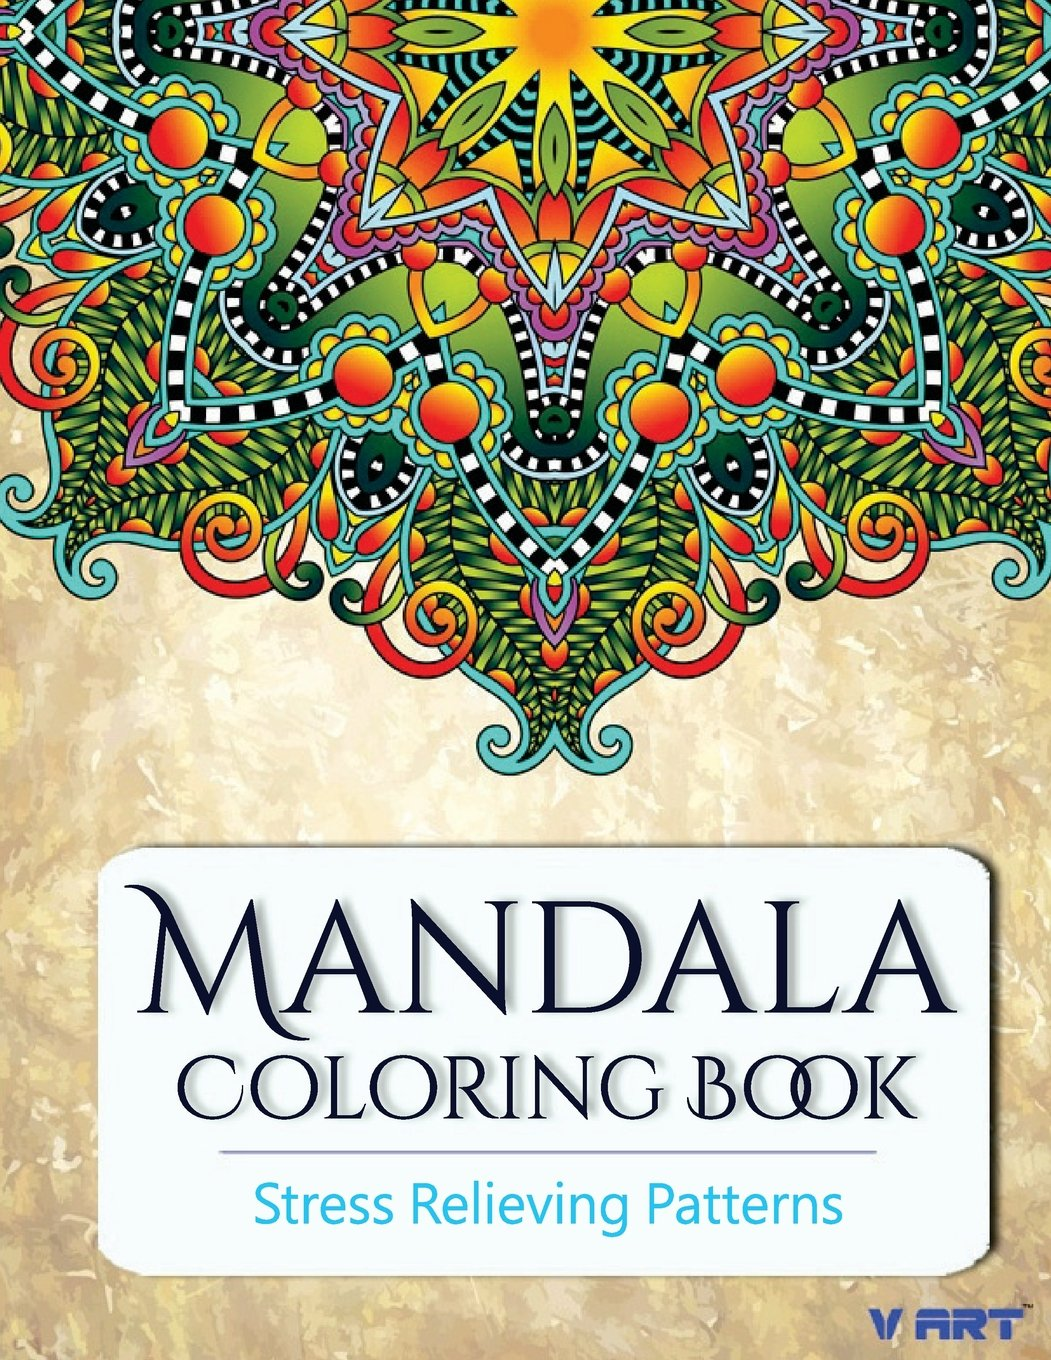 NEW Mandala Coloring Book Adults Stress Relieving Patterns